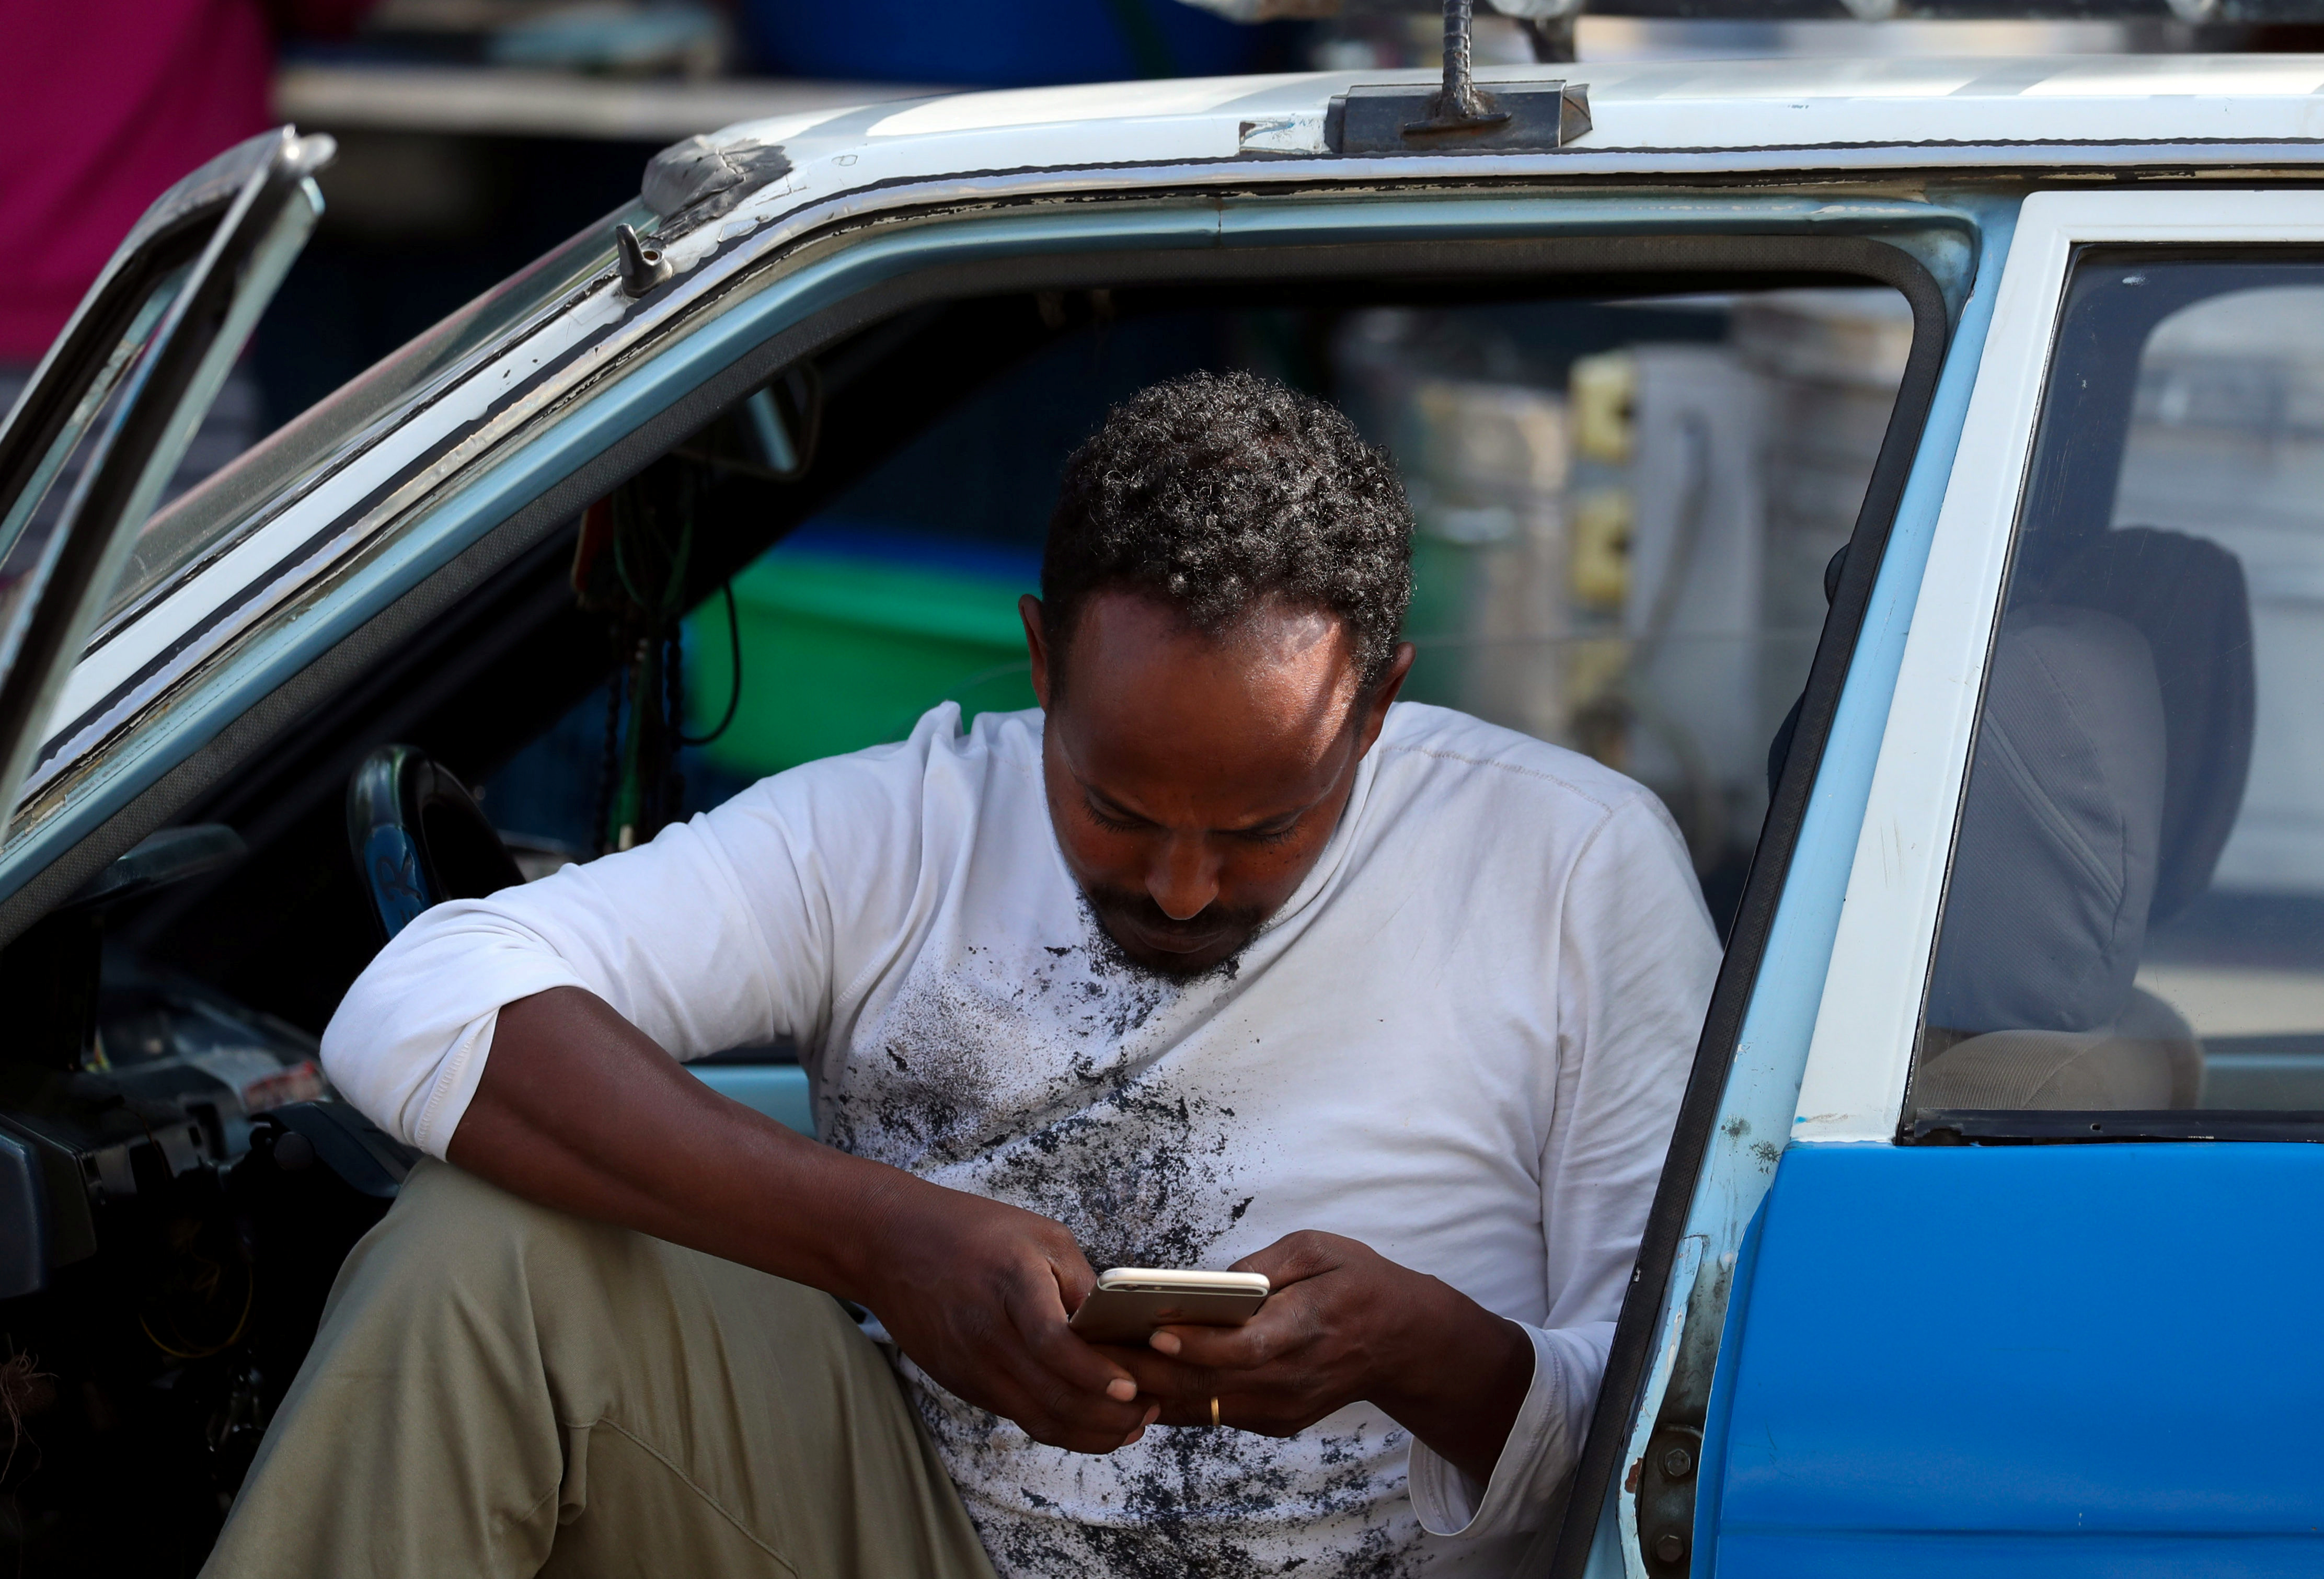 UN Expert Urges Ethiopia to Stop Shutting Down Internet